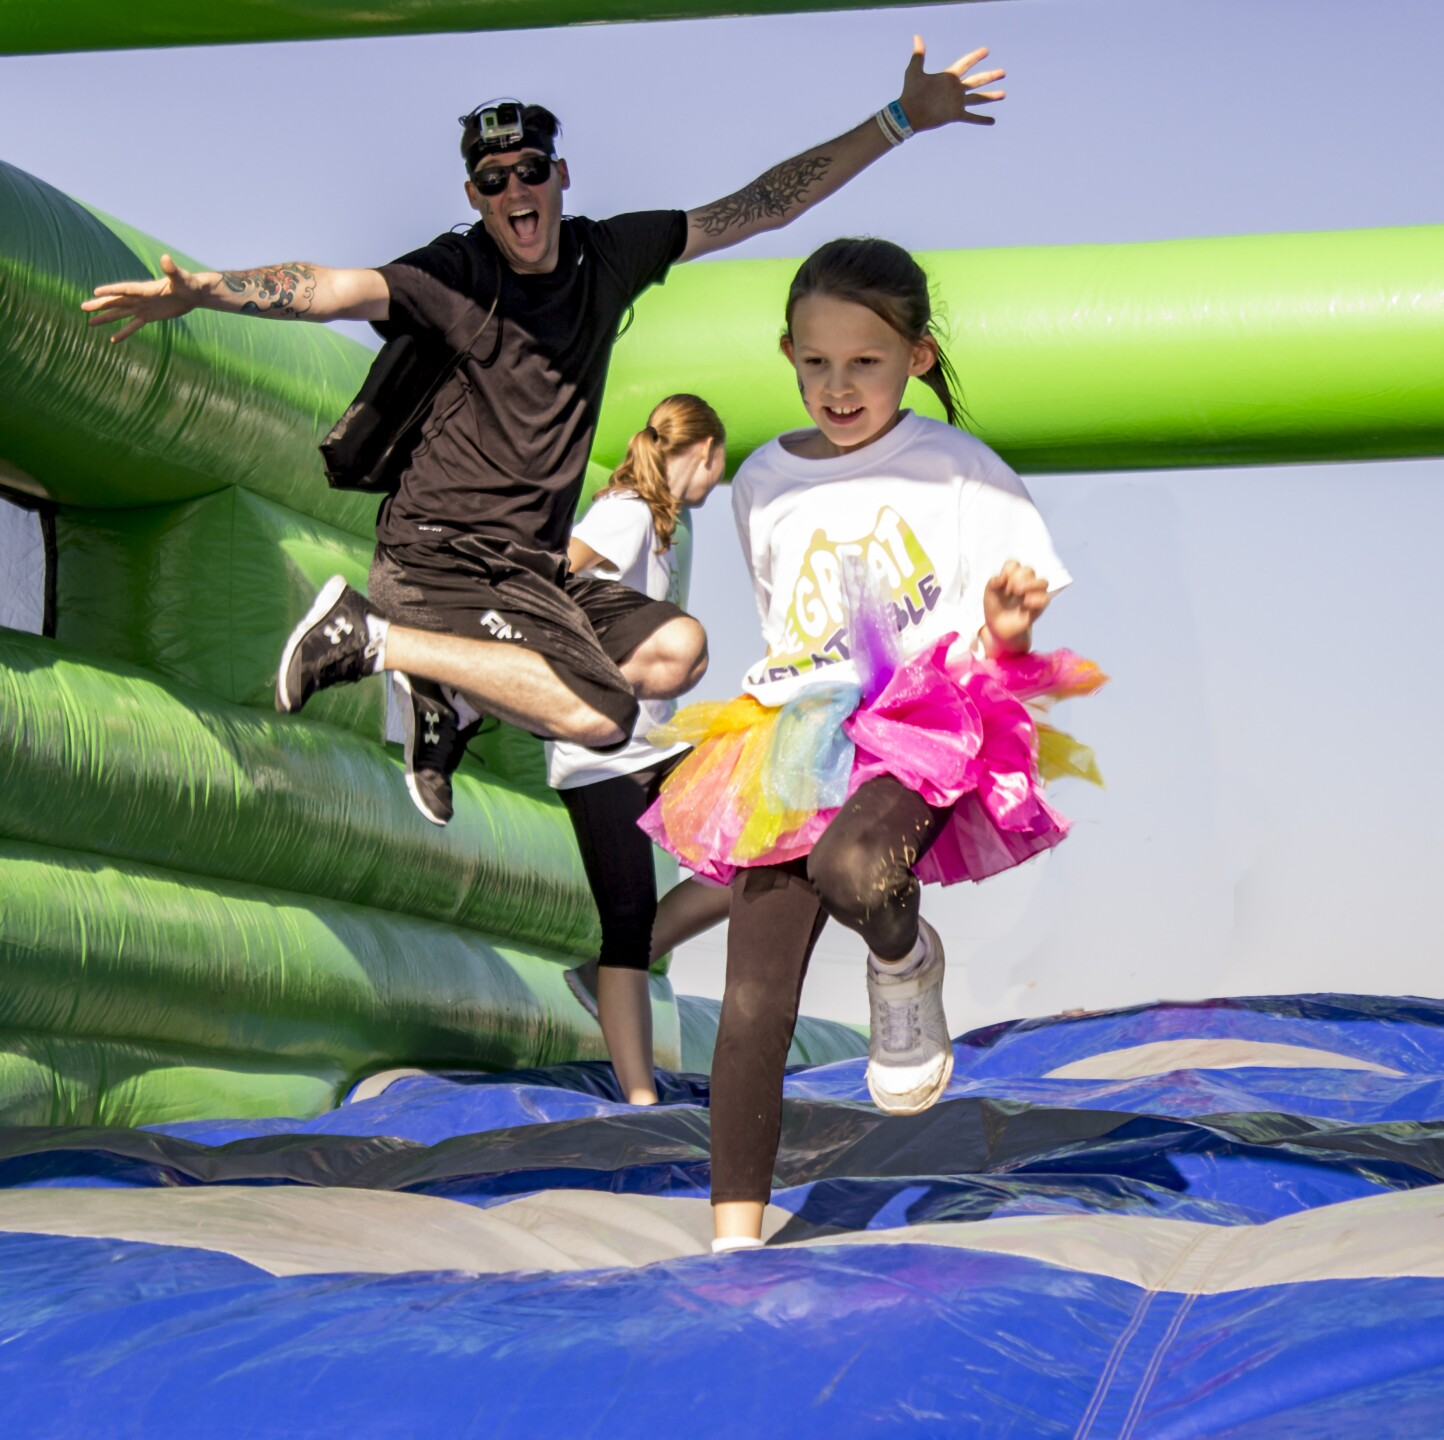 Photos: The Great Inflatable Race coming to Virginia Beach on June 23